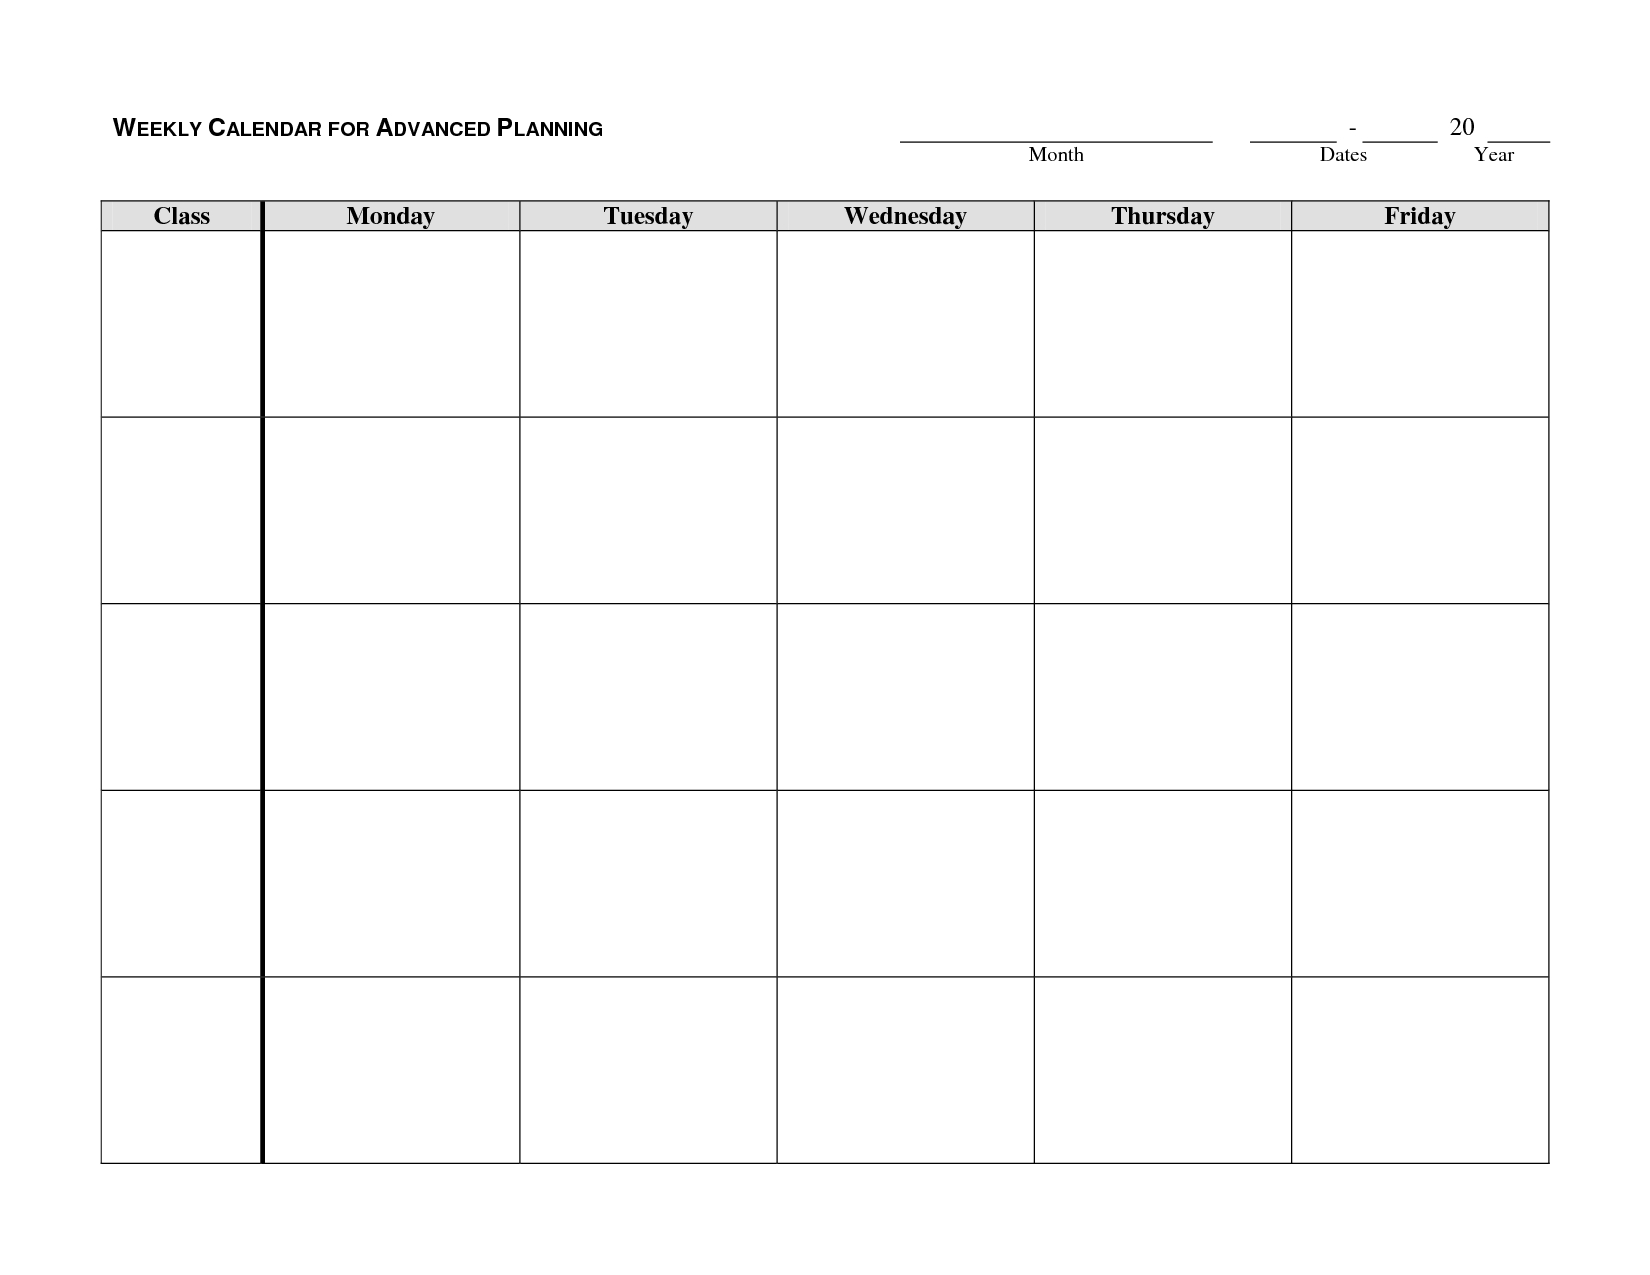 Weekly Calendar Template - Google Search | Autism/school | Weekly with regard to Calendar Monday Through Friday Schedule